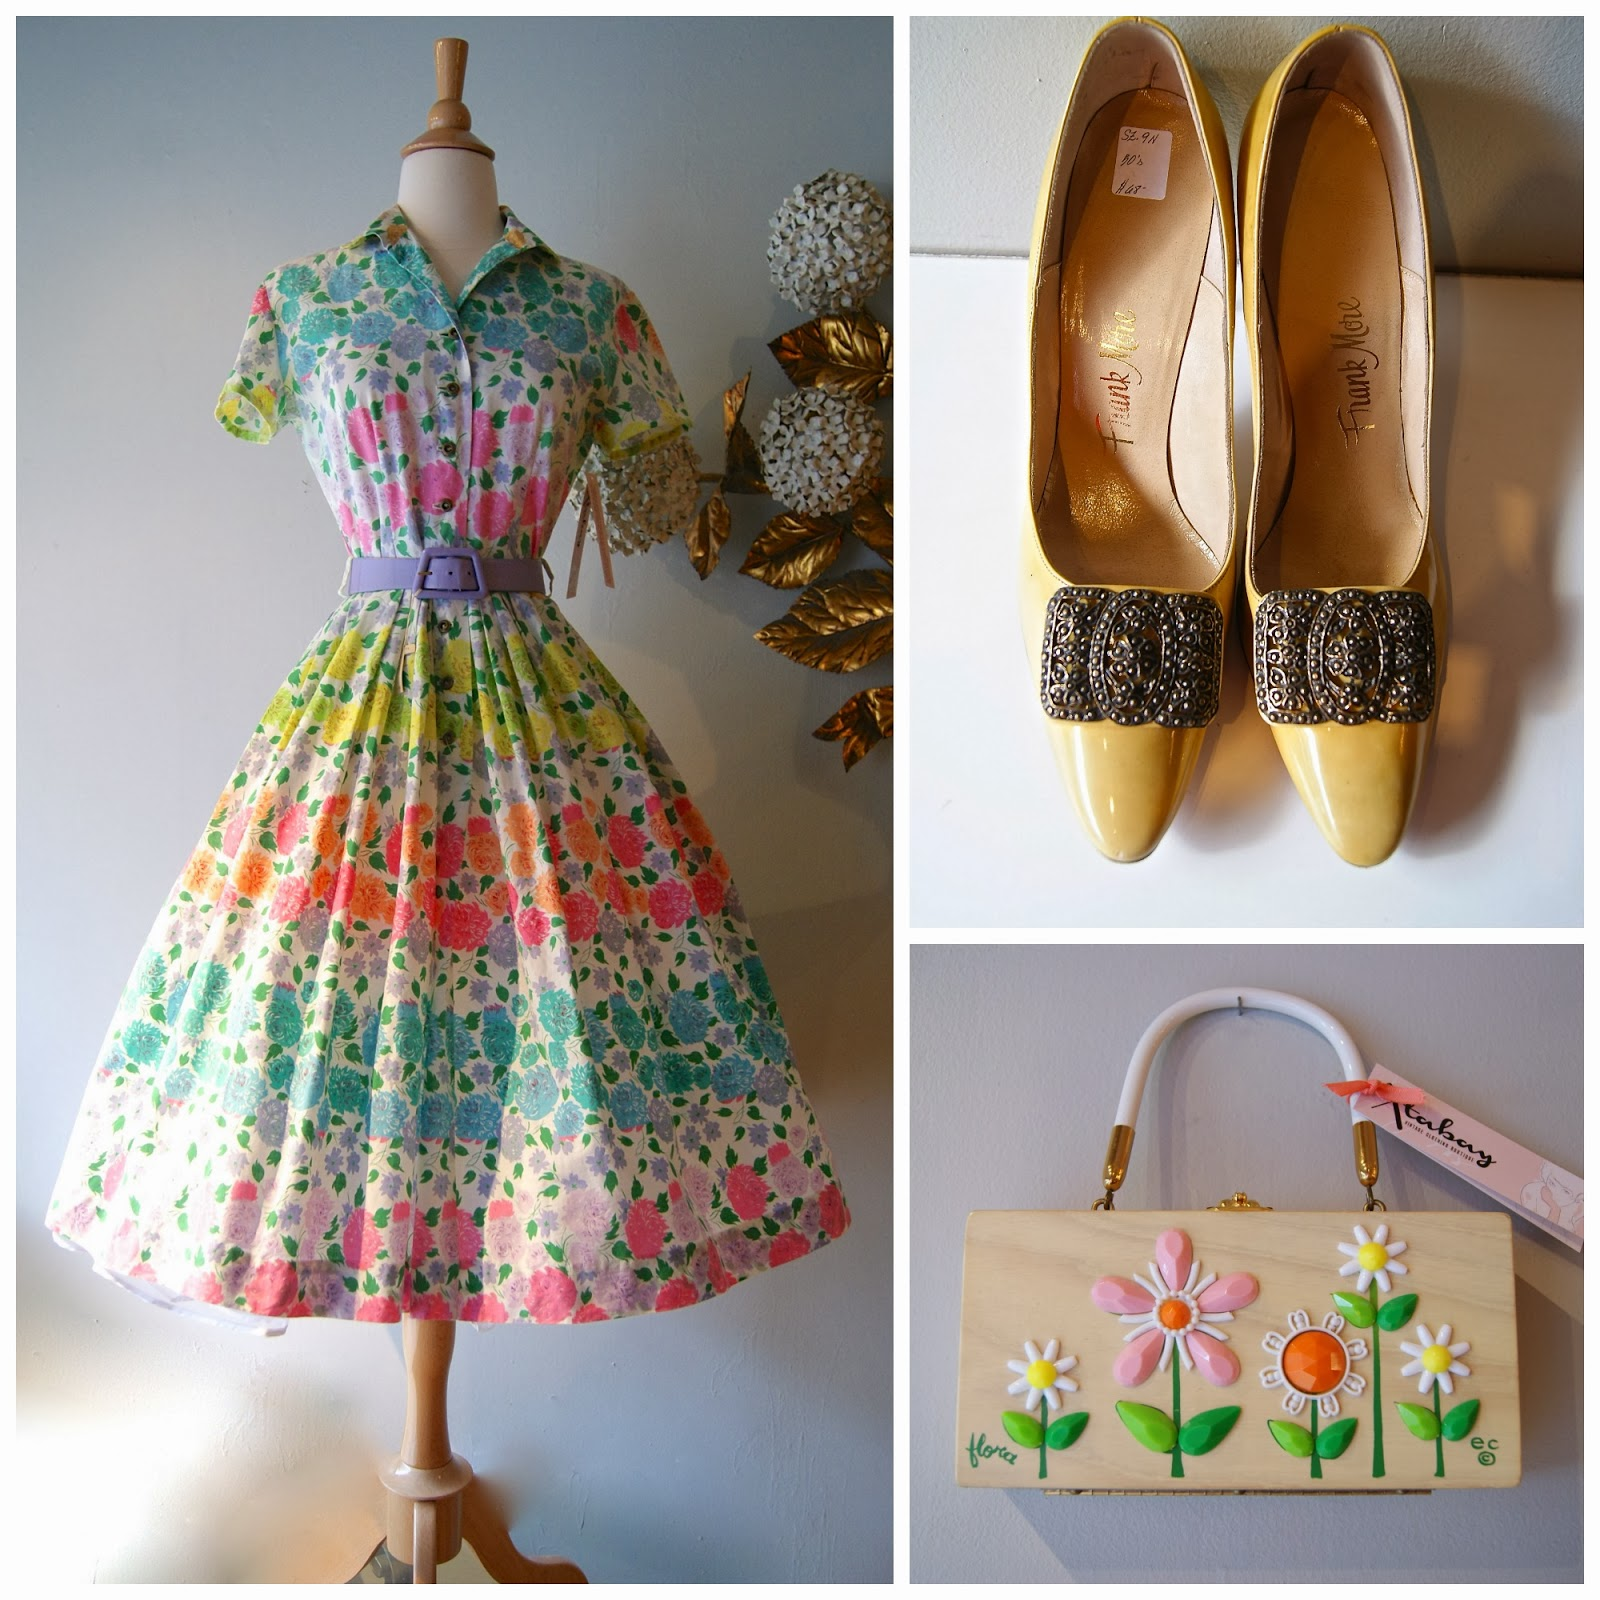 Perfect For A Garden Party Or As Wedding Guest 1950s Cotton Rose Print Dress Butter Heels And Again The Enid Collins Fleurs Box Purse